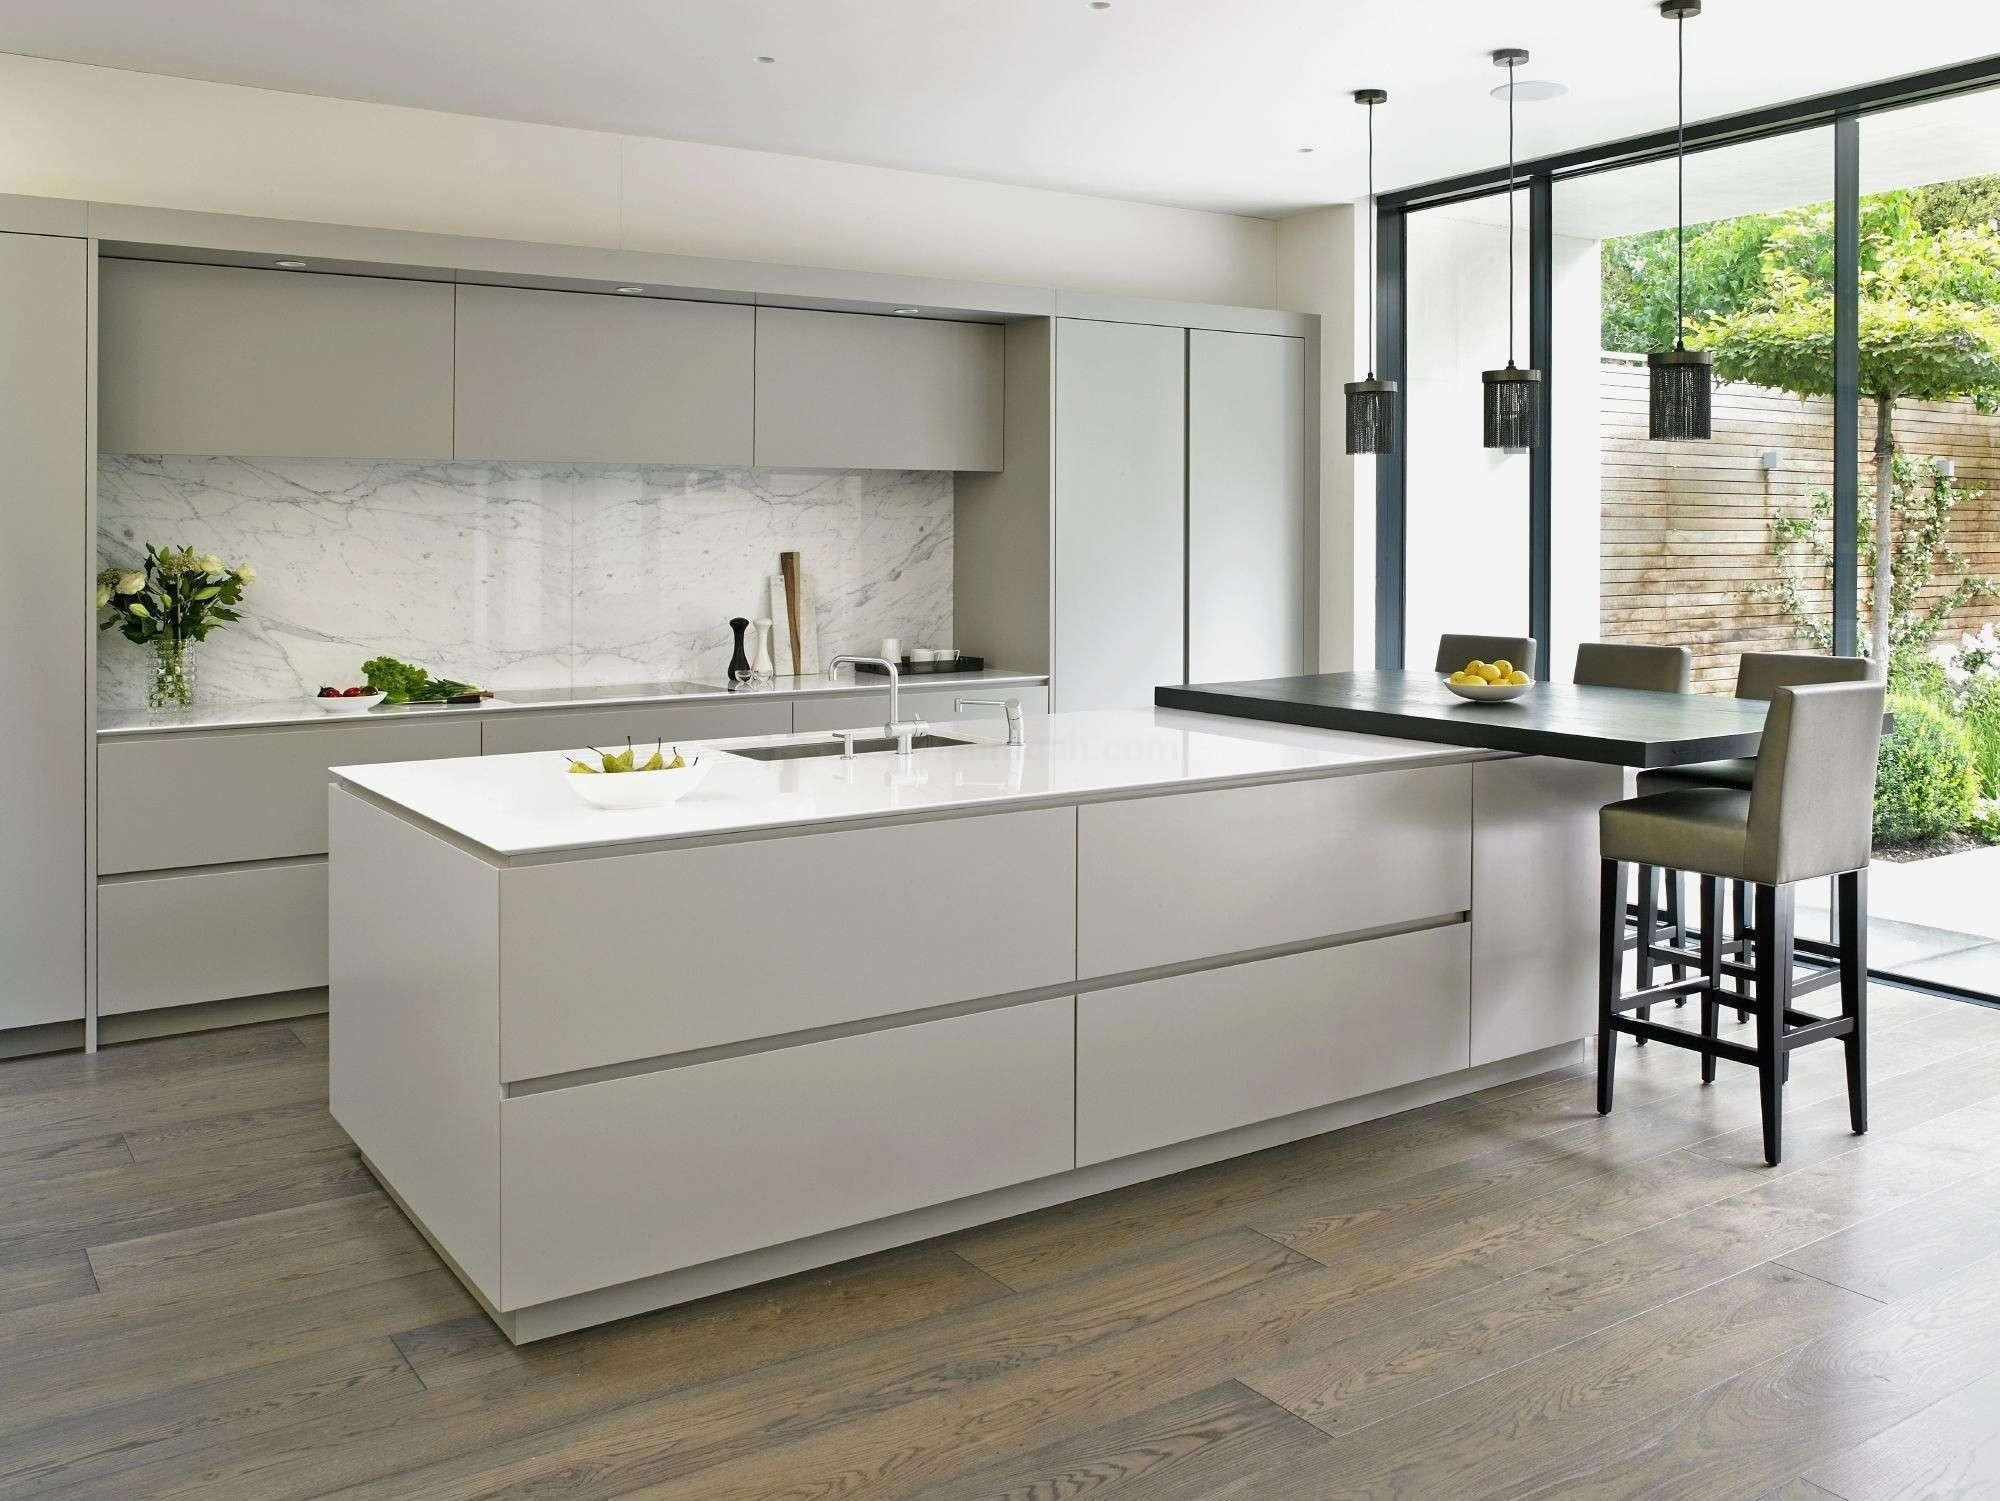 Best Hardwood Floor Color with White Cabinets Of Inspirational White Kitchen Cabinets with Grey island Blogbeat Net In White Kitchen Cabinets with Grey island Beautiful Kitchen L Kitchen L Kitchen 0d Kitchens Scheme Modern